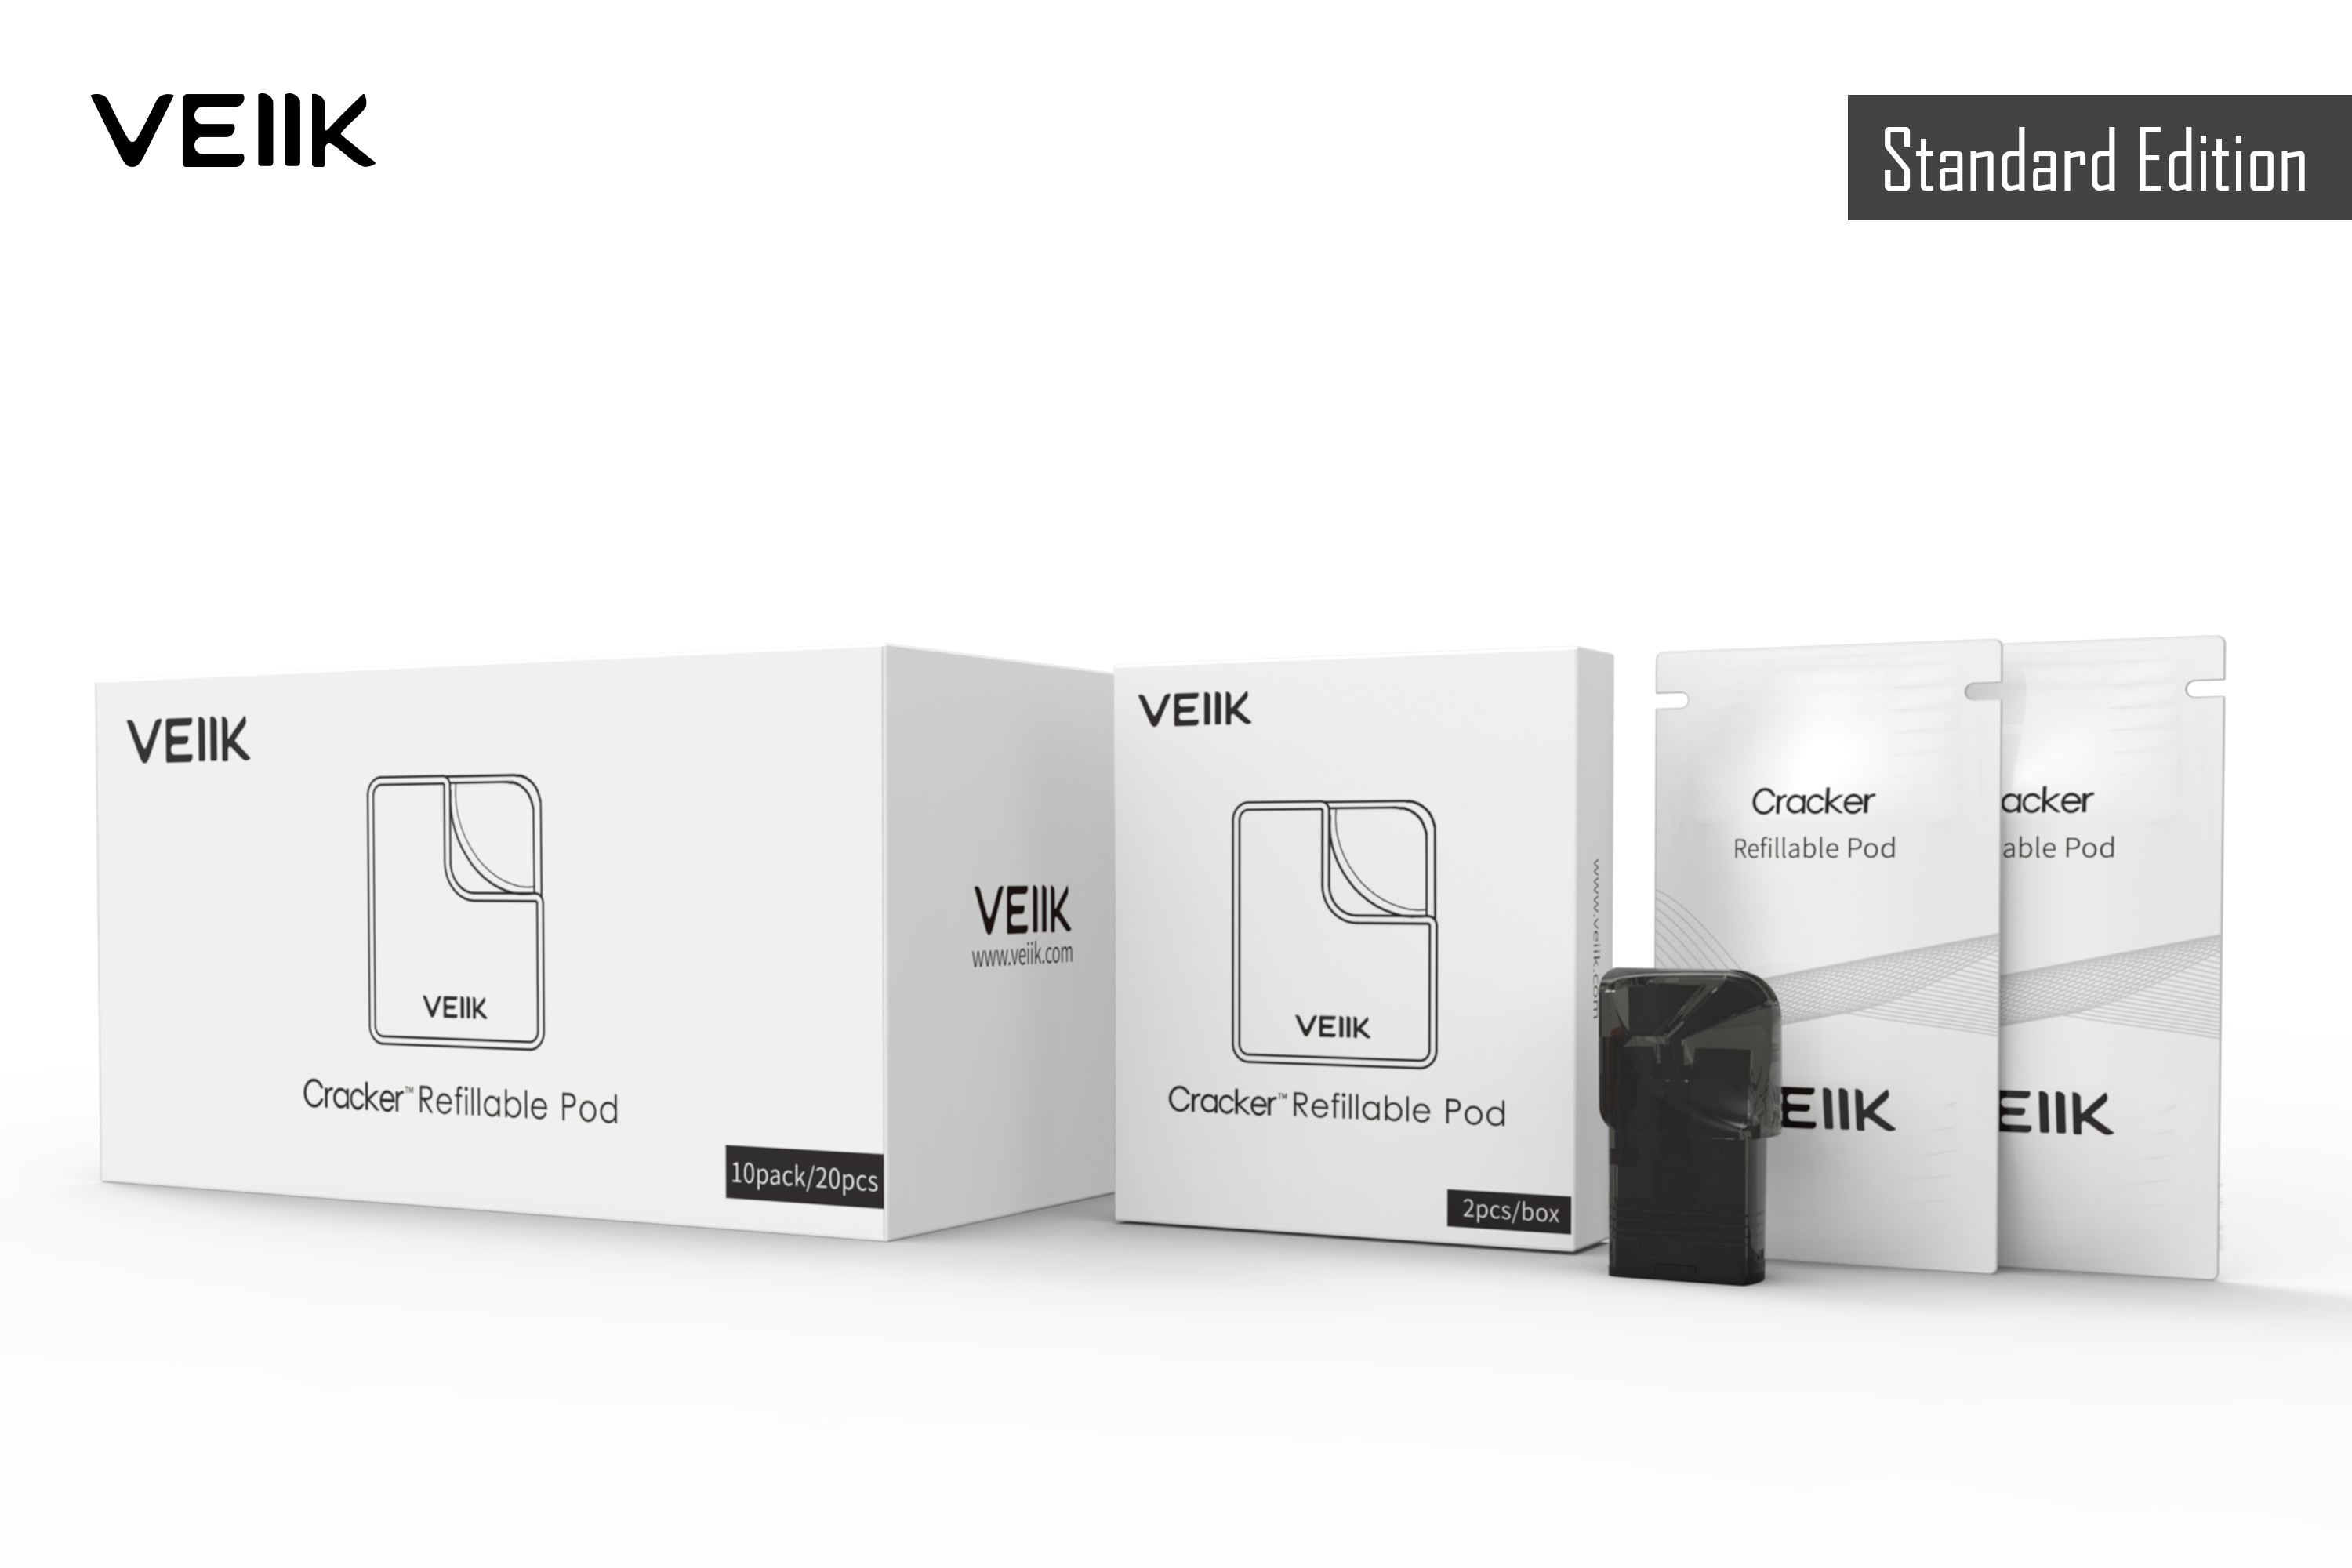 VEIIK vapor pod supplier high-end personal vaporizer-11